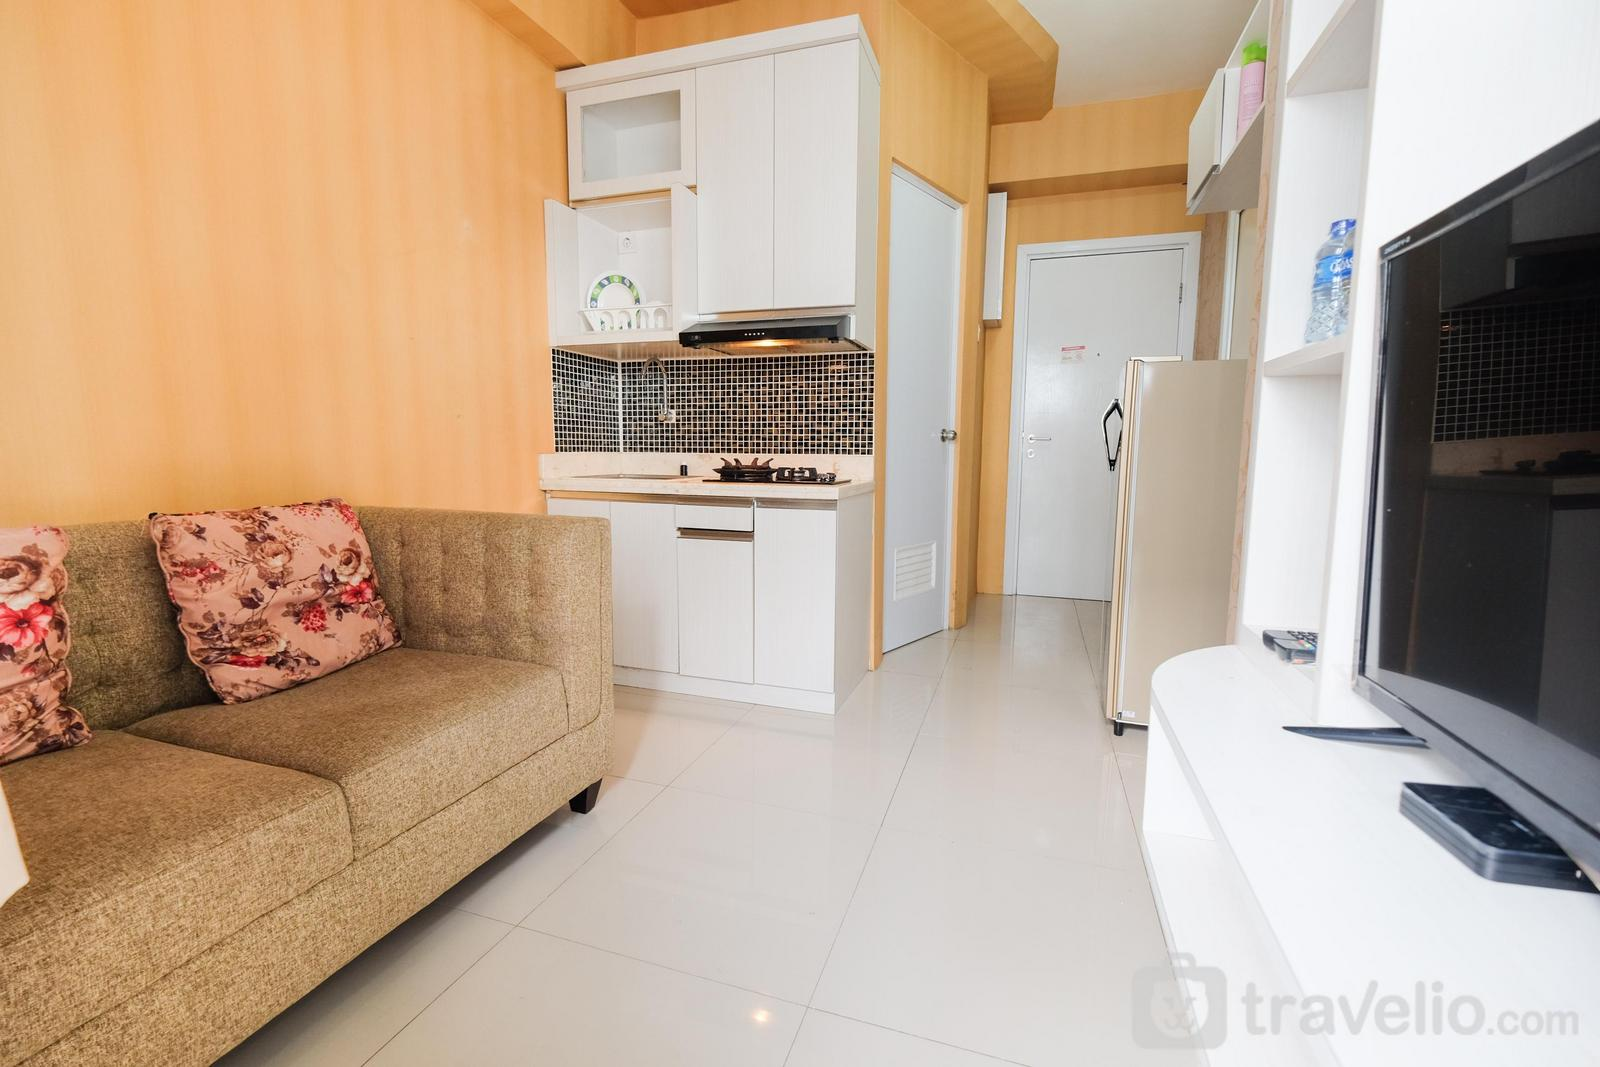 Green Pramuka Cempaka Putih - City View 2BR Apartment @ Green Pramuka near Shopping Mall By Travelio